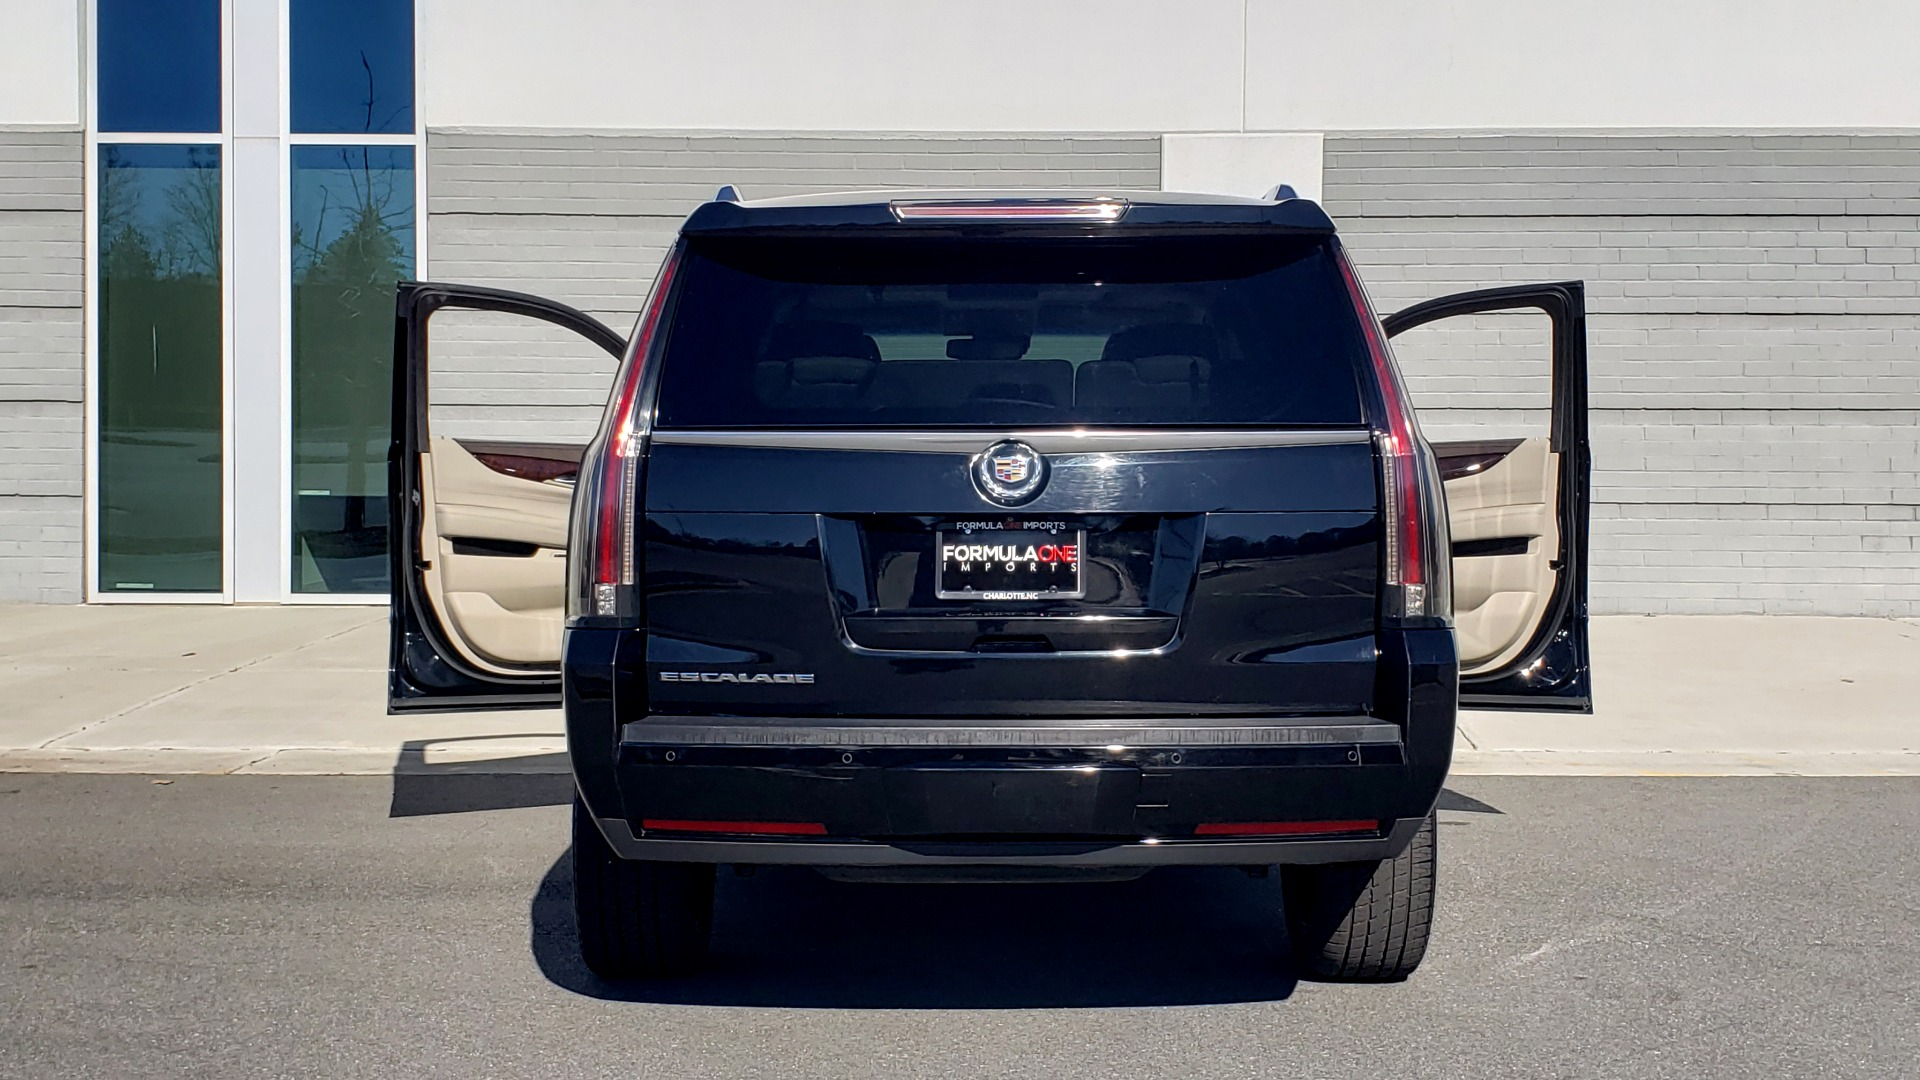 Used 2015 Cadillac ESCALADE PREMIUM 4WD / NAV / SUNROOF / REARVIEW / 3-ROW for sale Sold at Formula Imports in Charlotte NC 28227 28